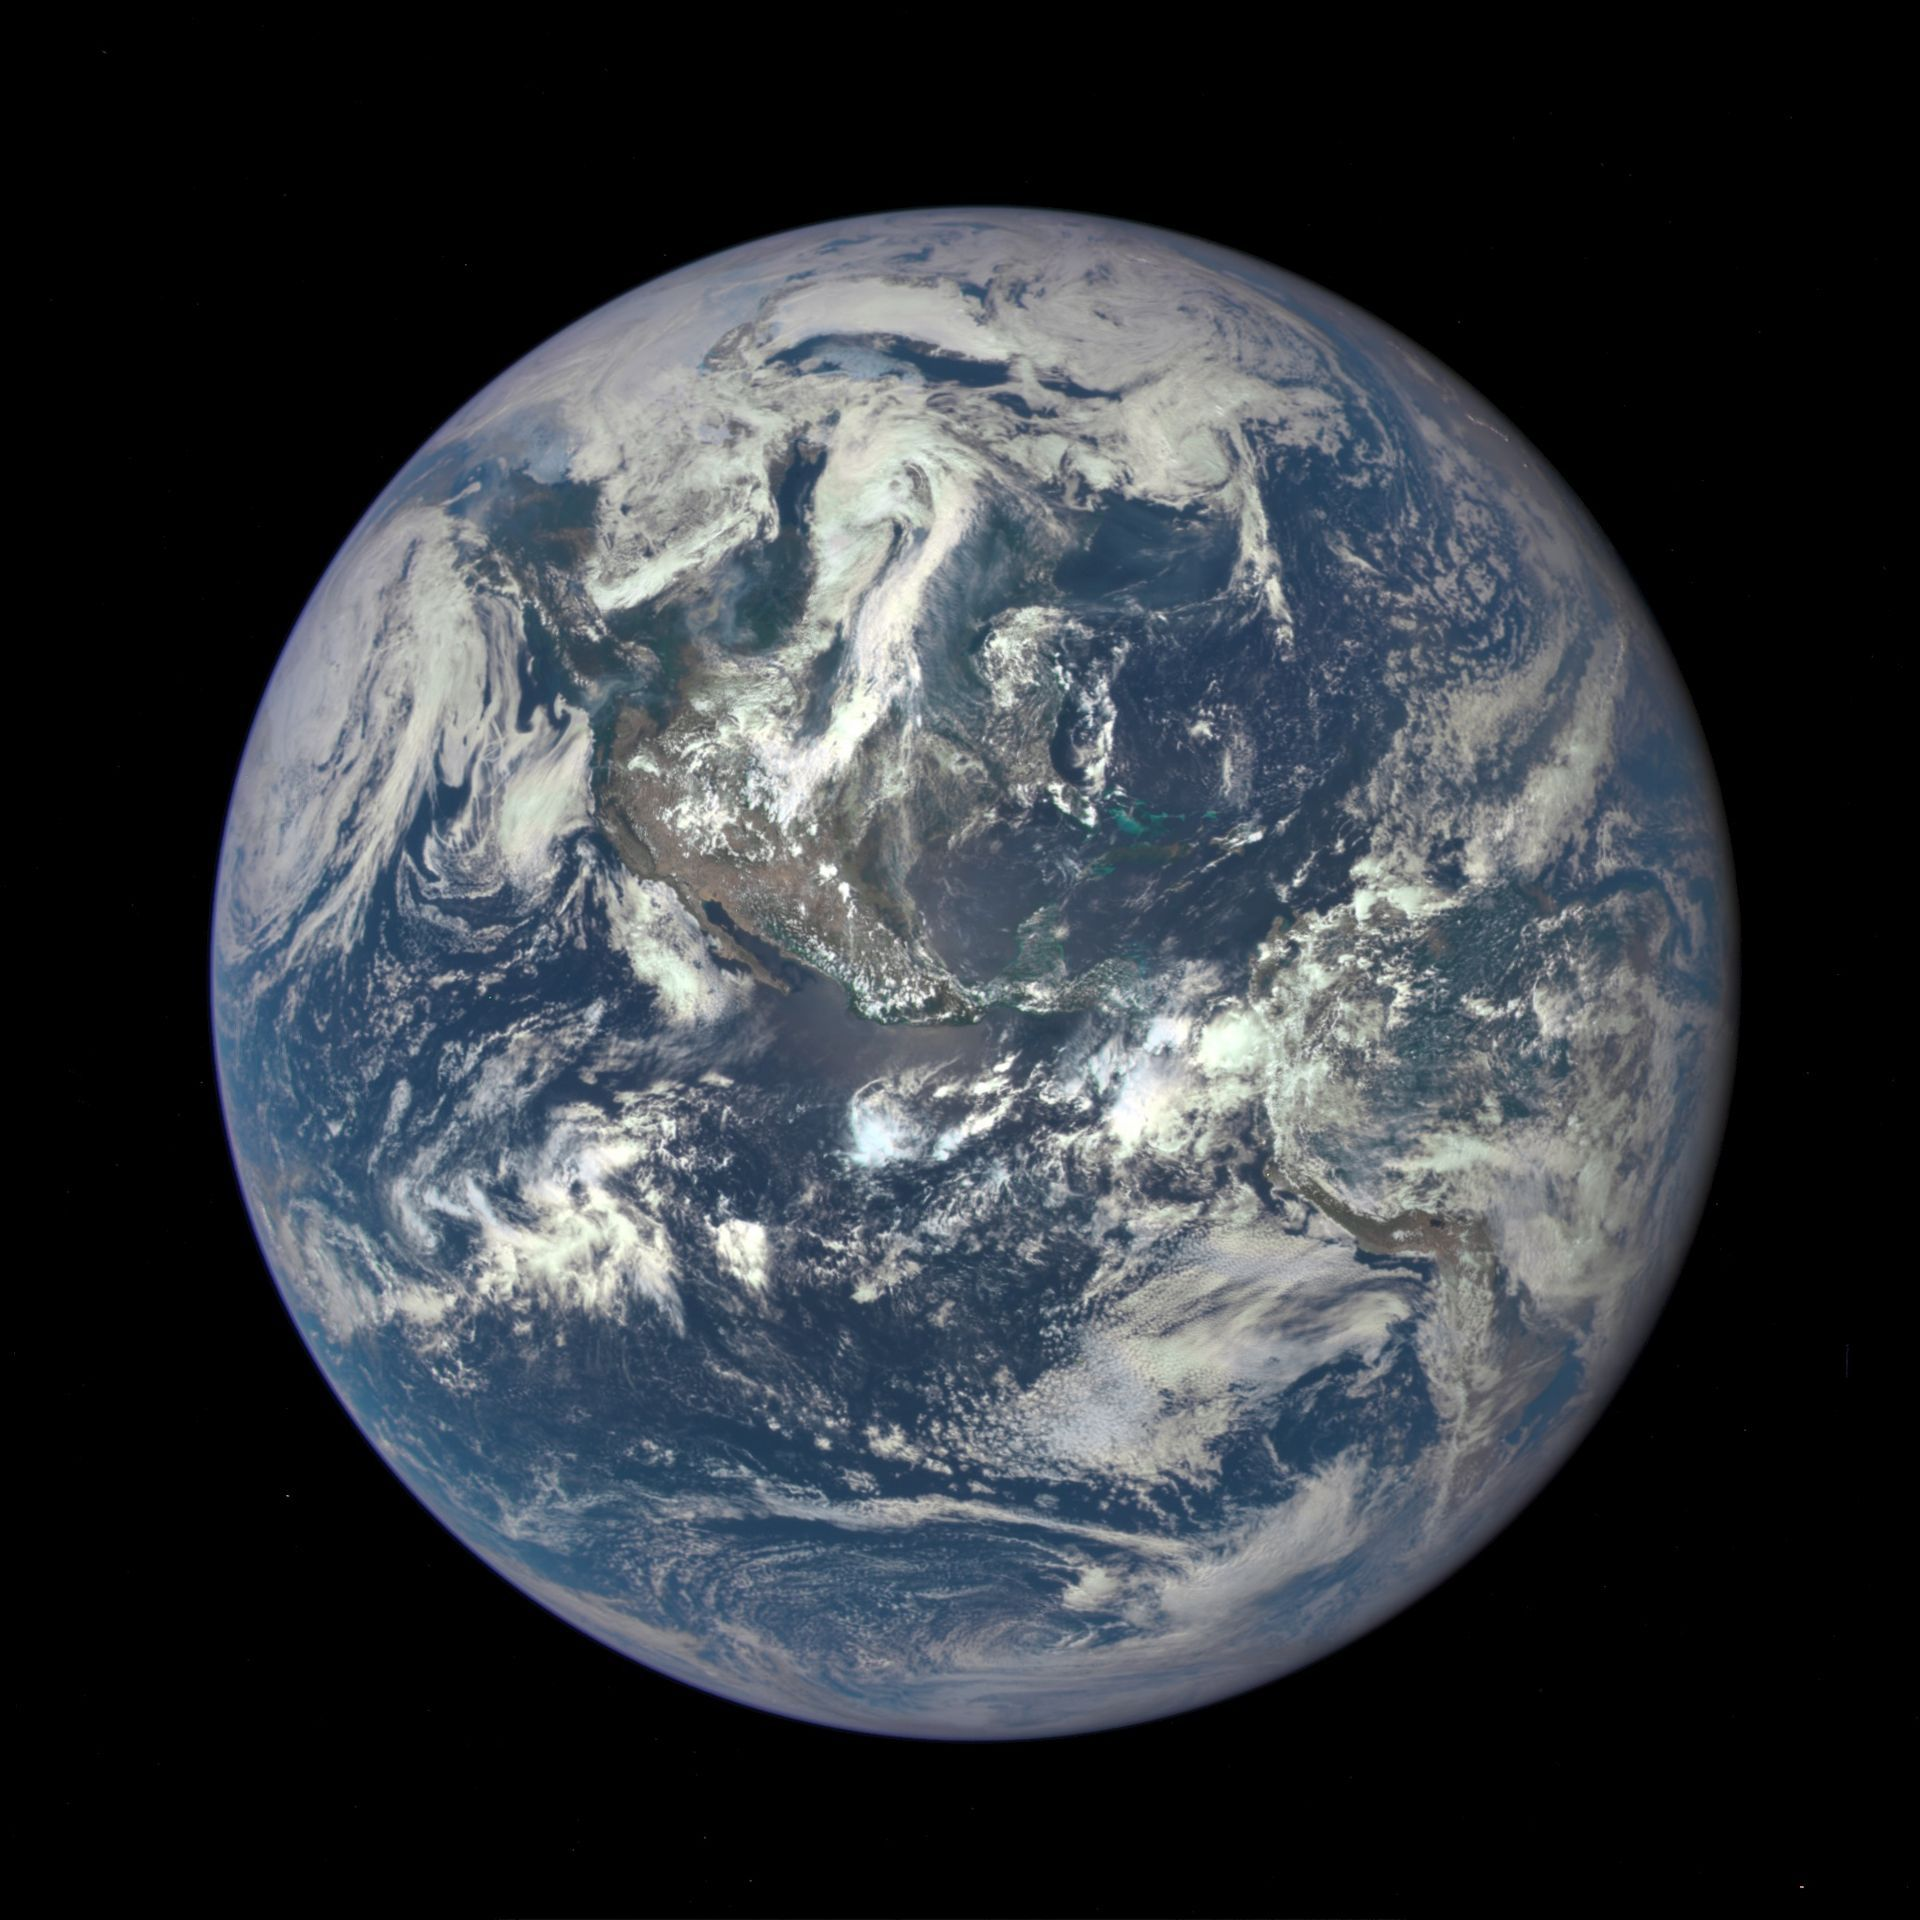 Earth as seen on July 6, 2015 from a distance of one million miles by a NASA scientific camera aboard the Deep Space Climate Observatory spacecraft. - Image Credits: NASA